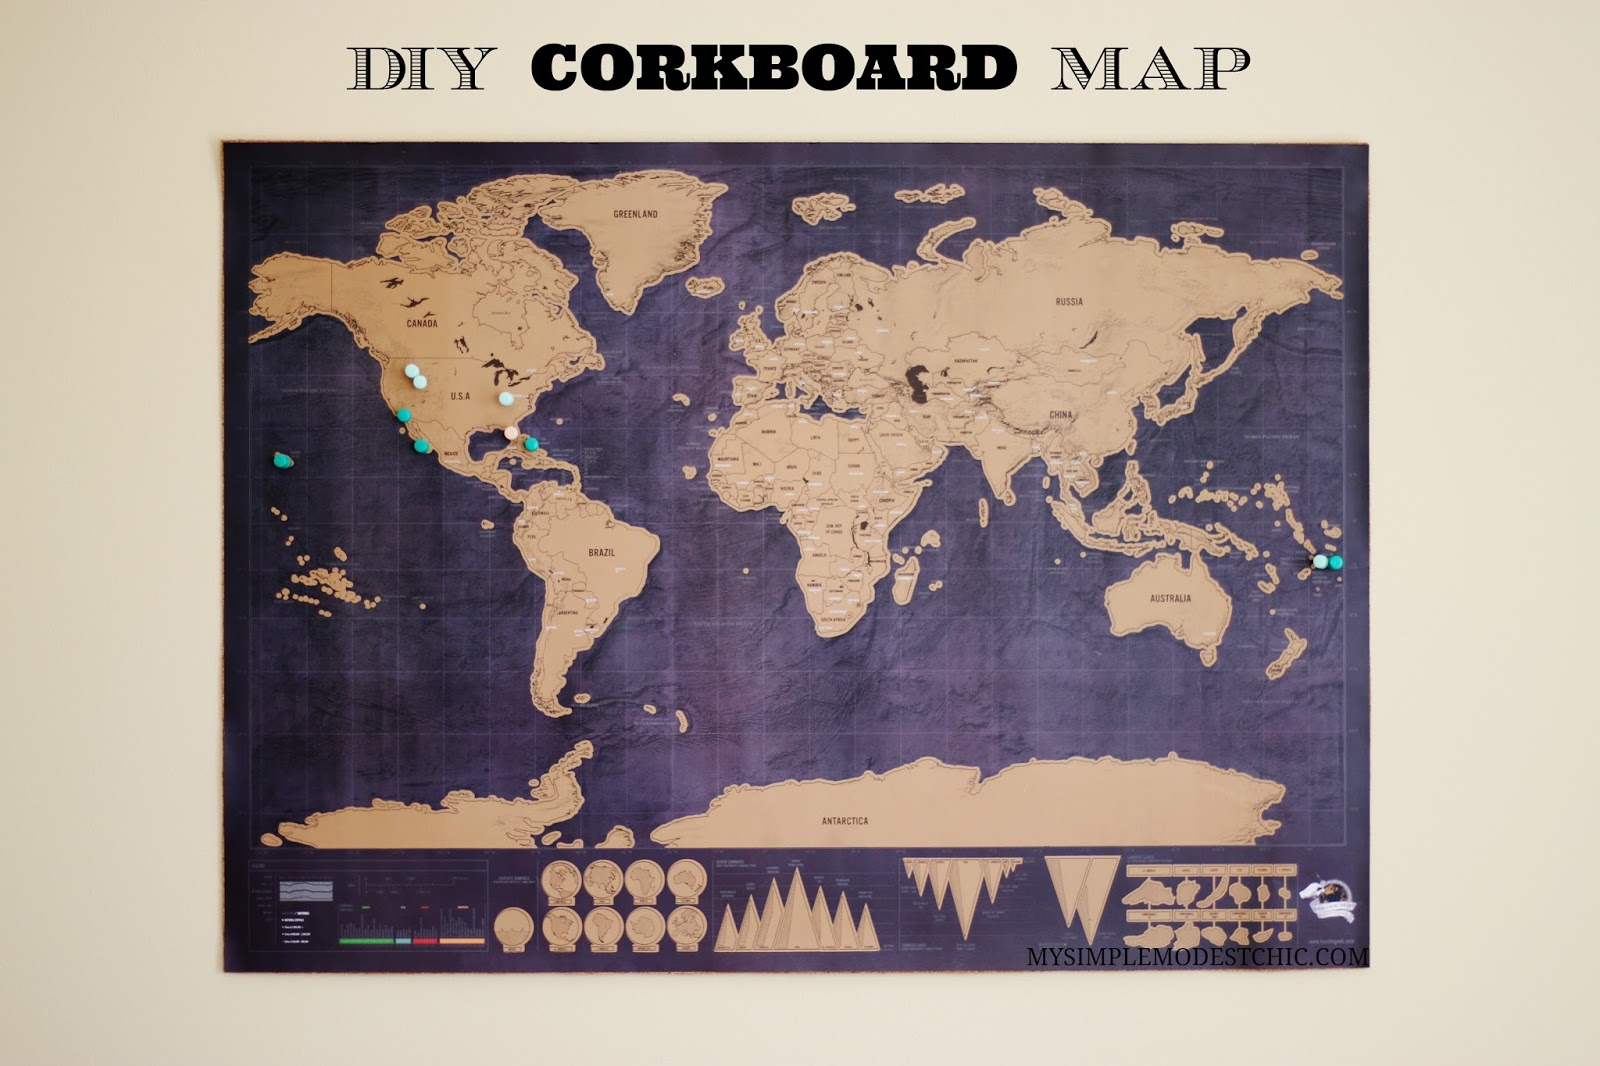 My Simple Modest Chic: Easiest DIY Cork Board Map